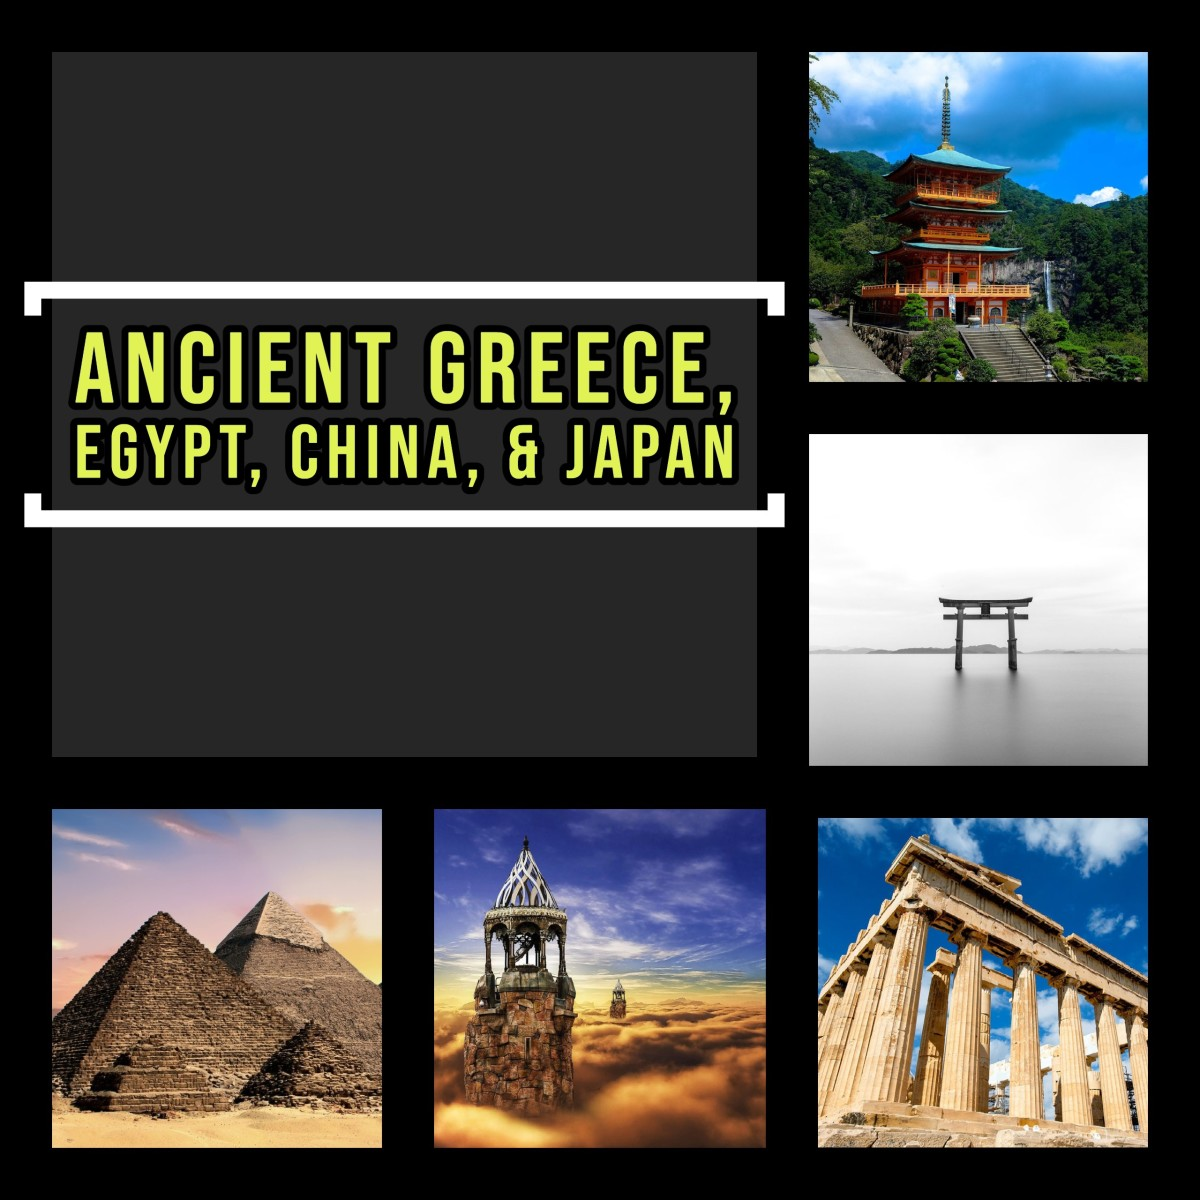 Ancient Greece, Egypt, China, and Japan history topics and questions.